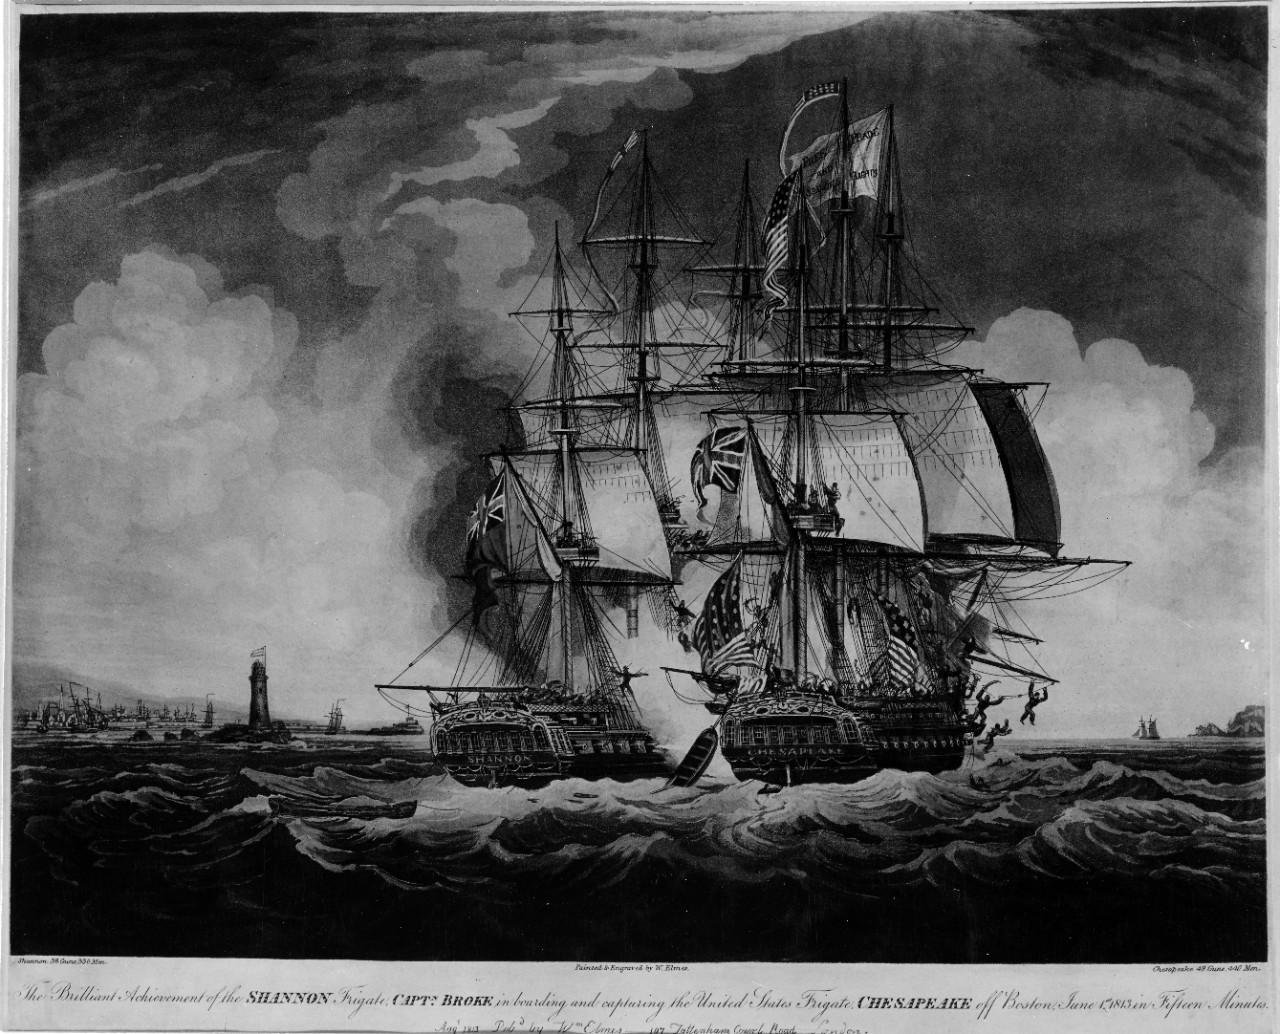 Engagement Between Chesapeake and HMS Shannon, 1 June 1813.